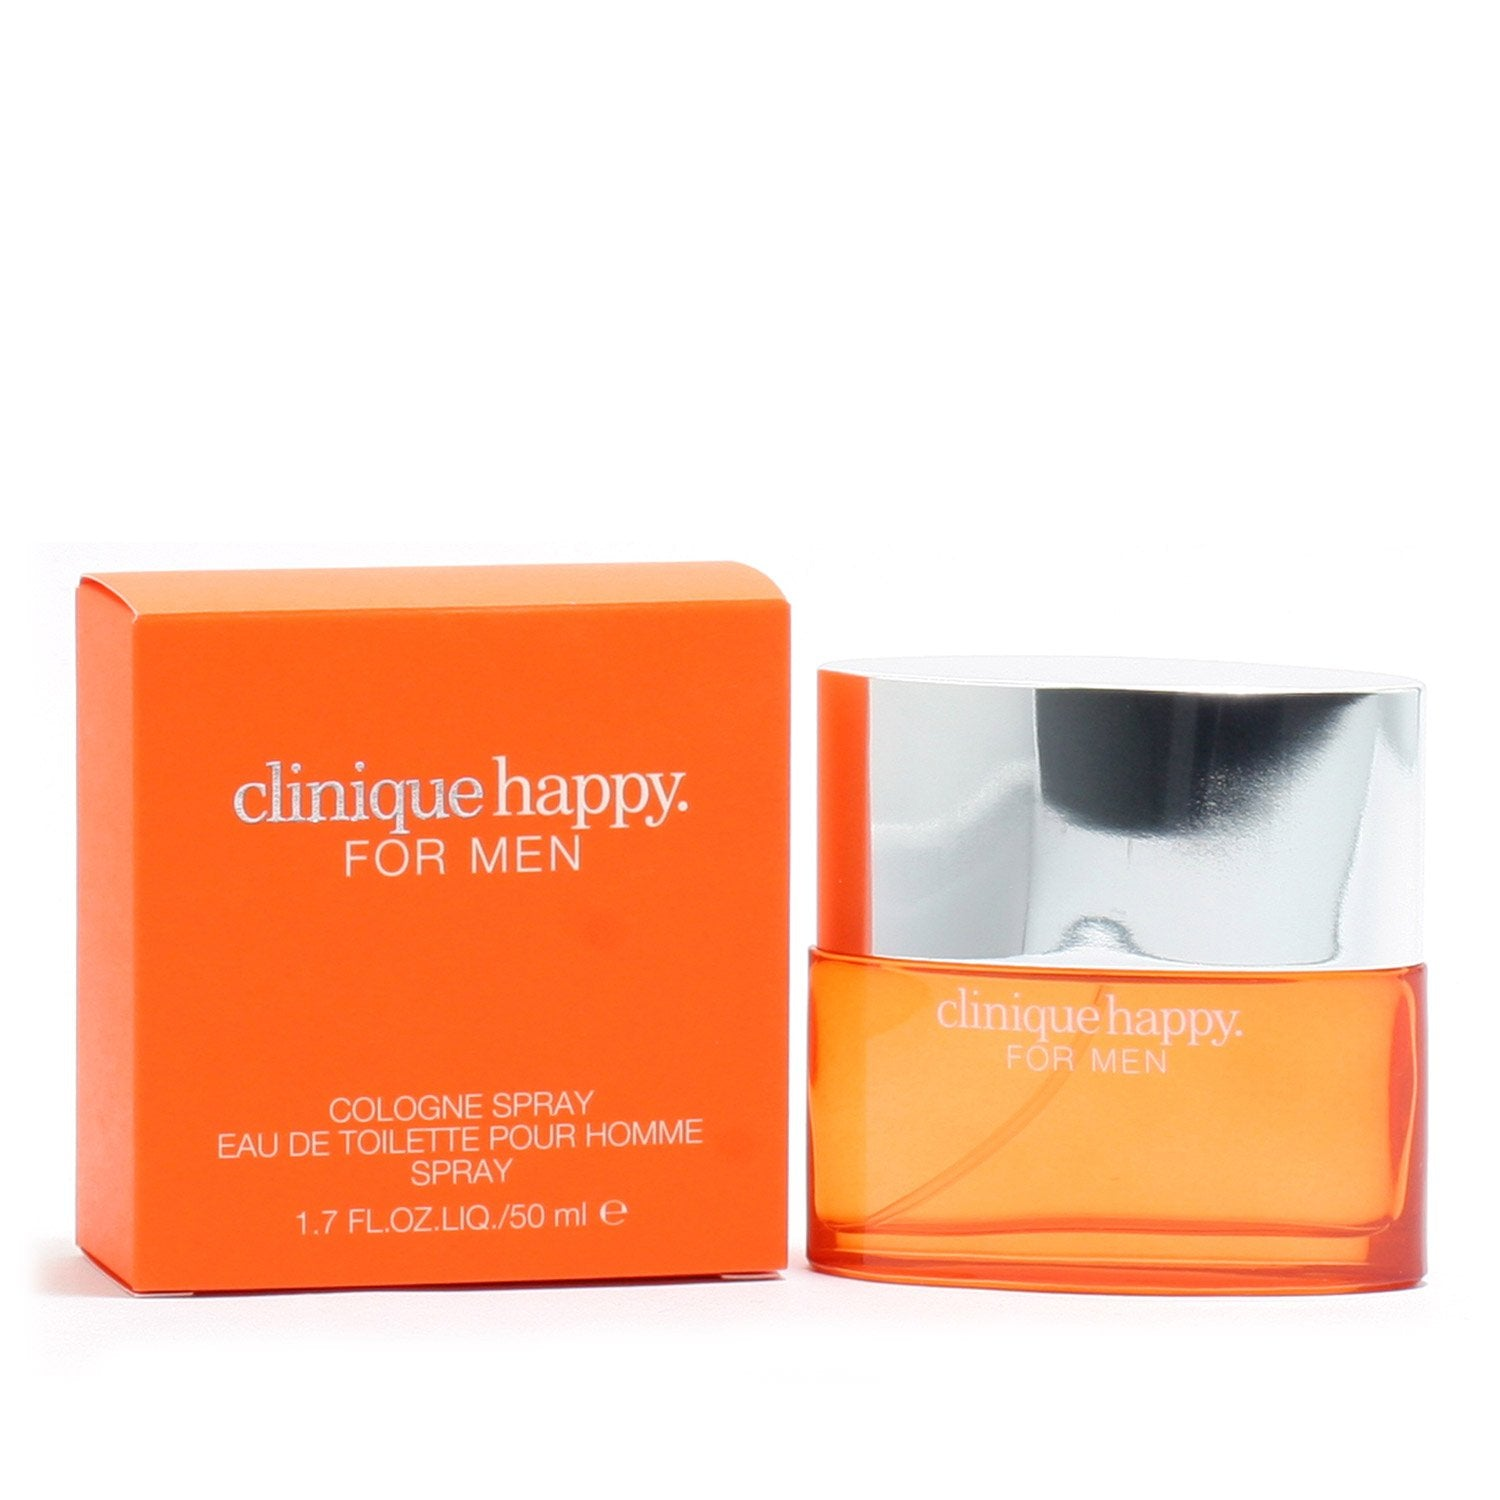 Cologne - HAPPY FOR MEN BY CLINIQUE - COLOGNE SPRAY